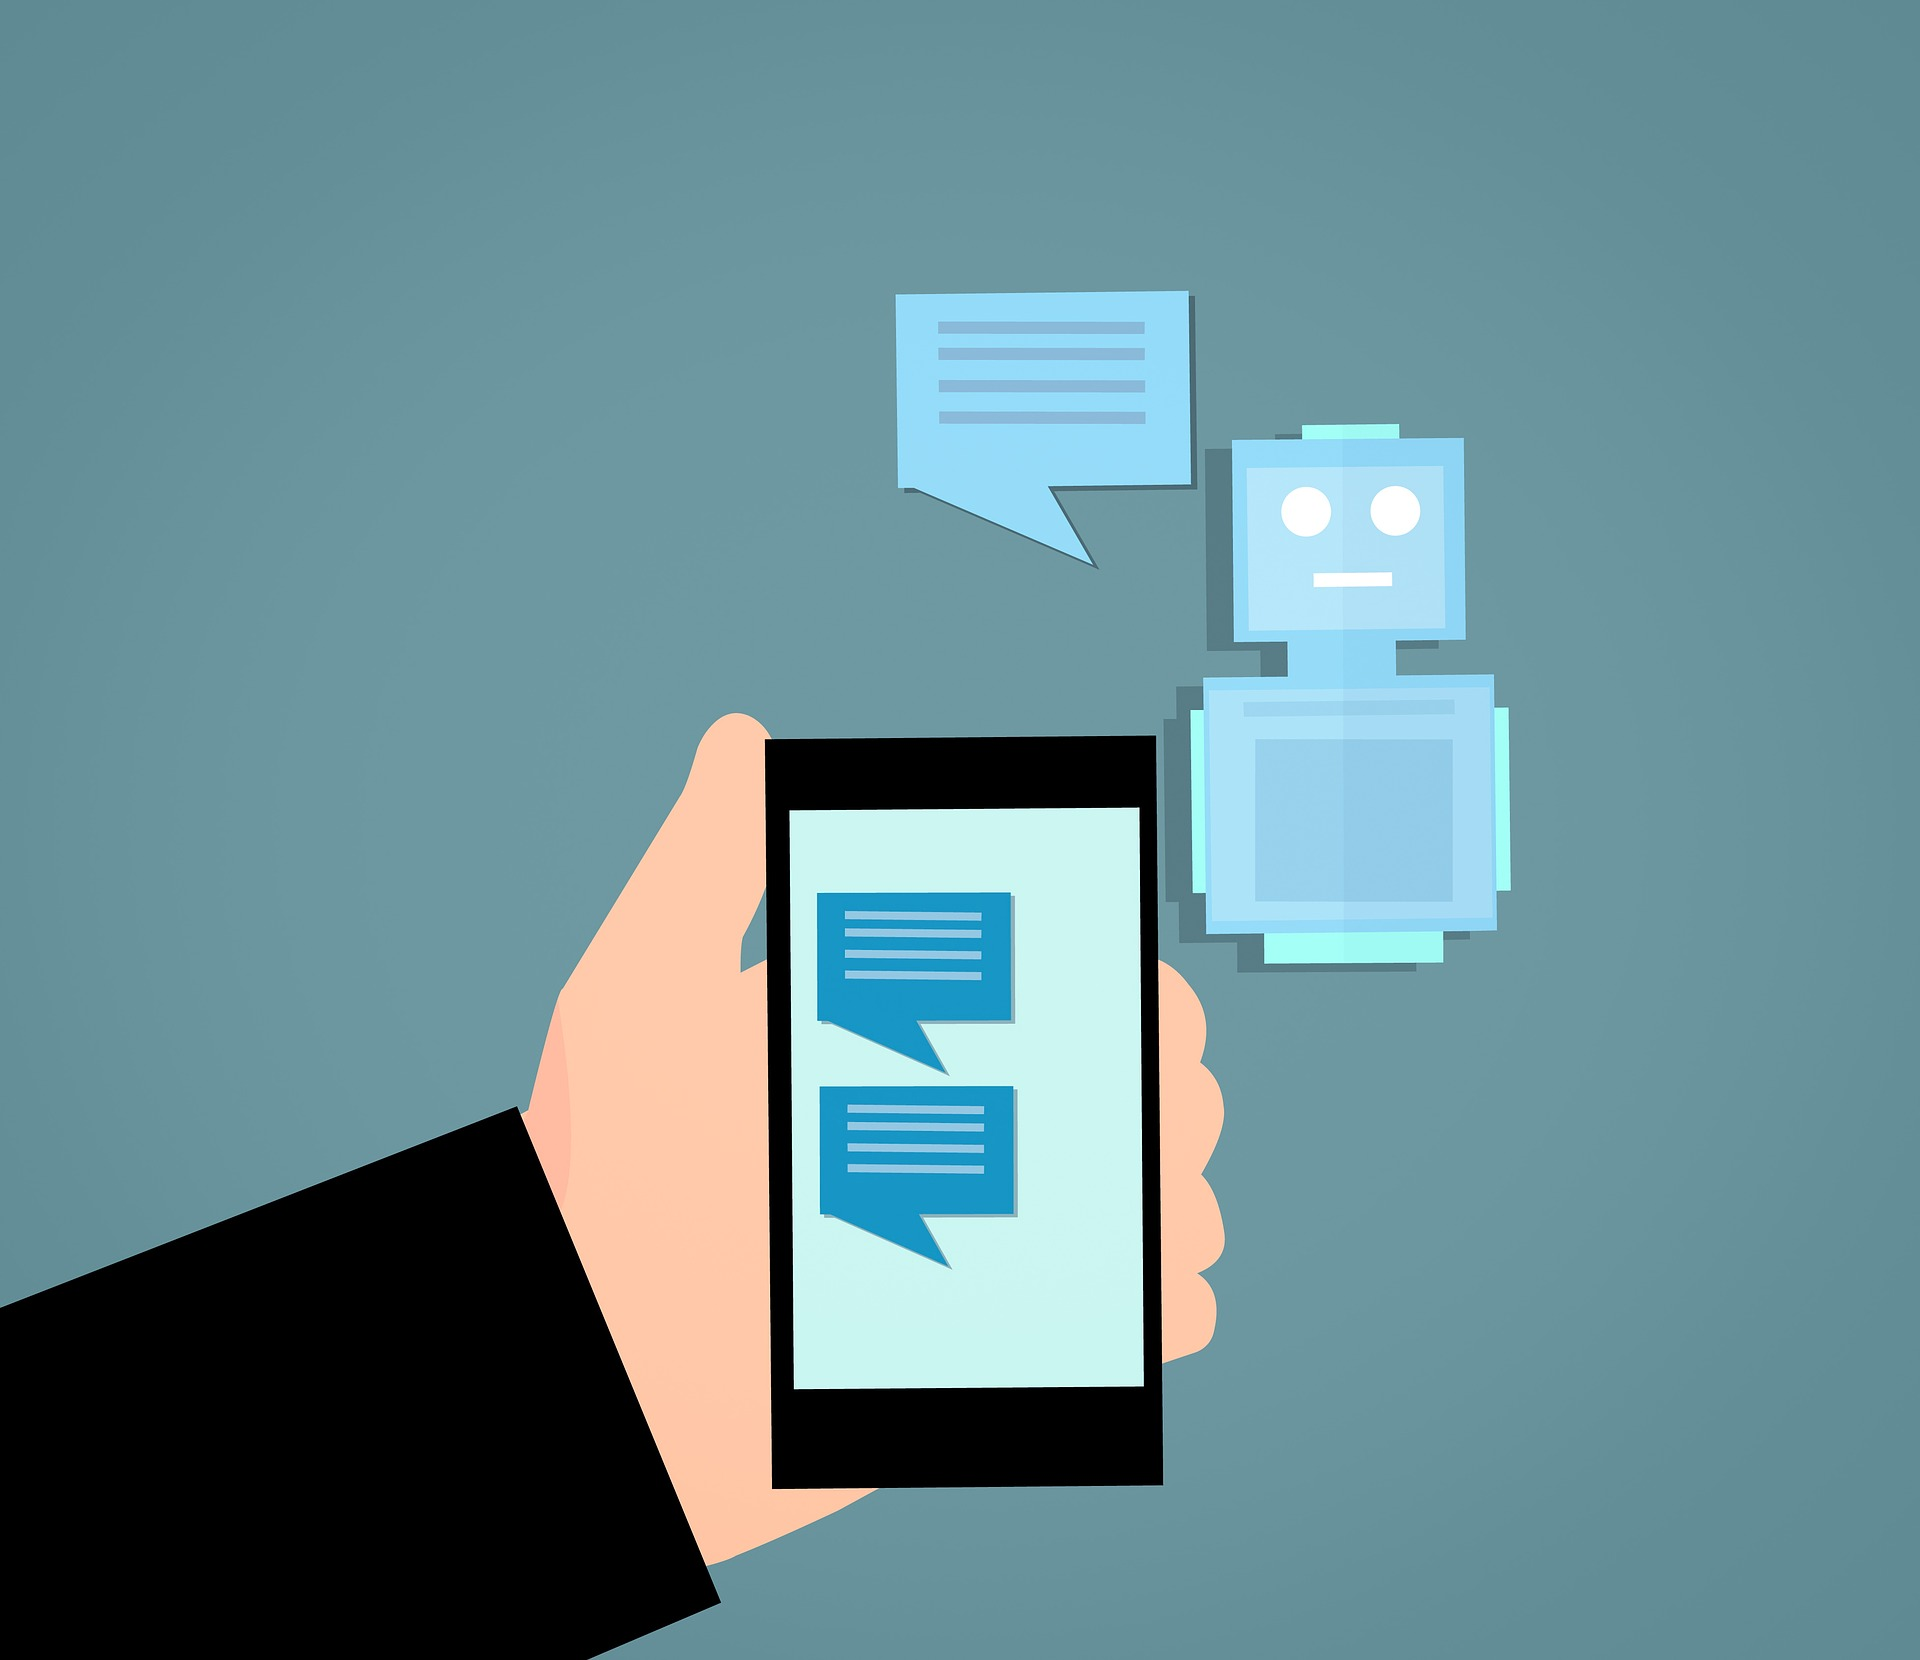 Human vs Chatbot: Who is Better at Customer Service?